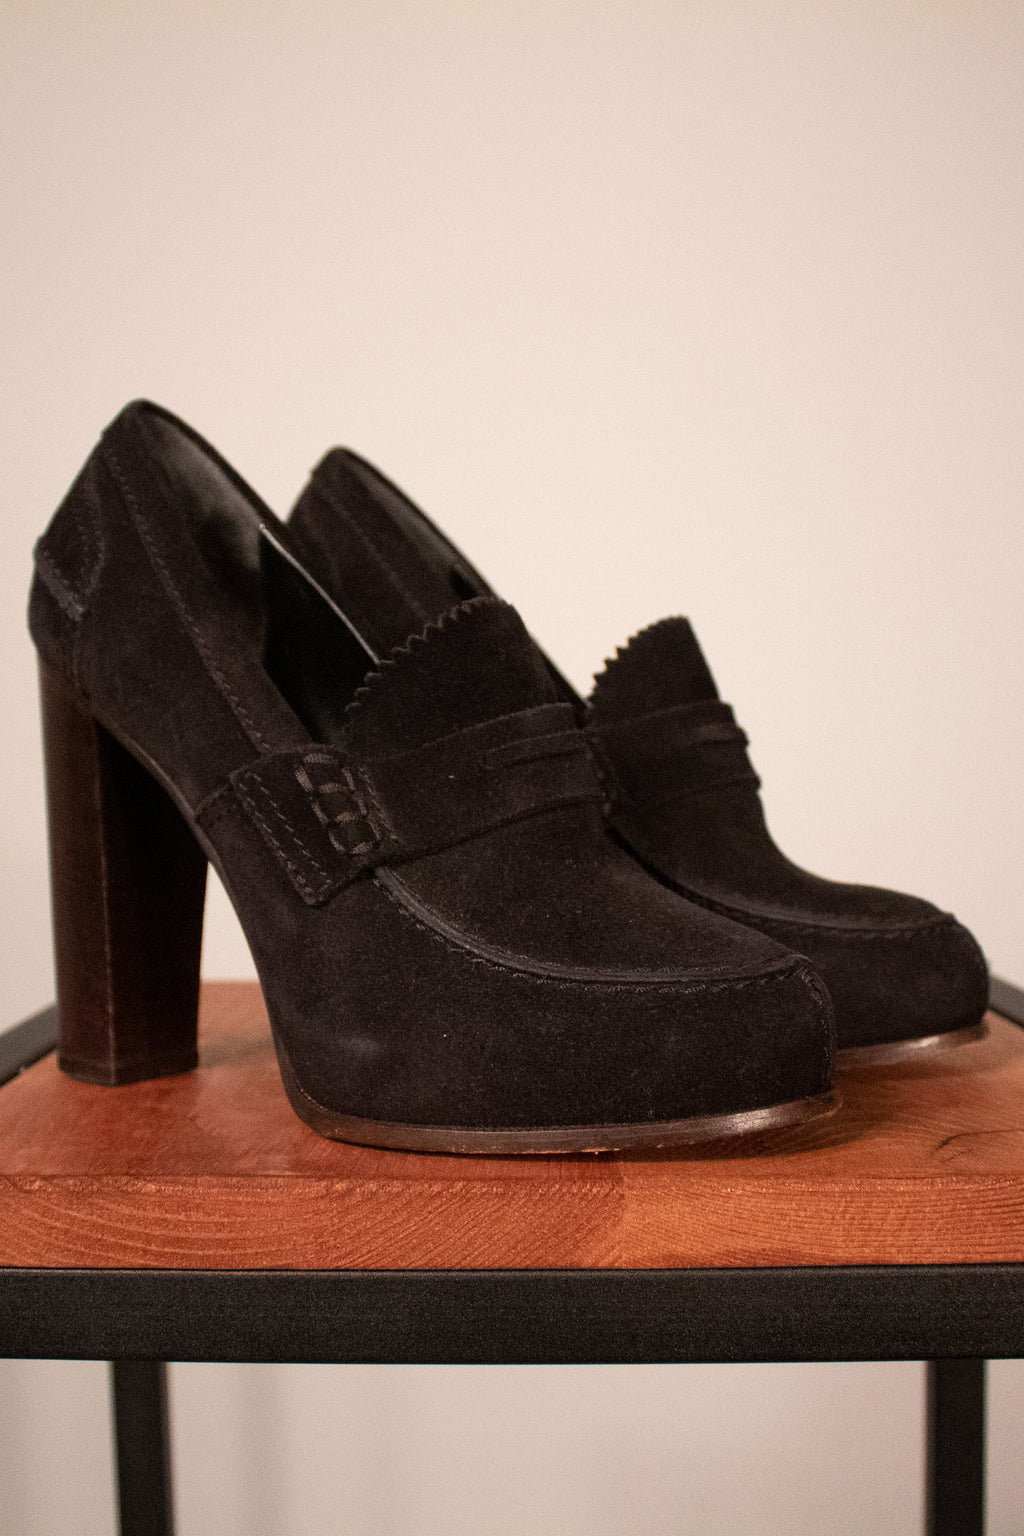 Celine by Phoebe Philo black suede platform loafers